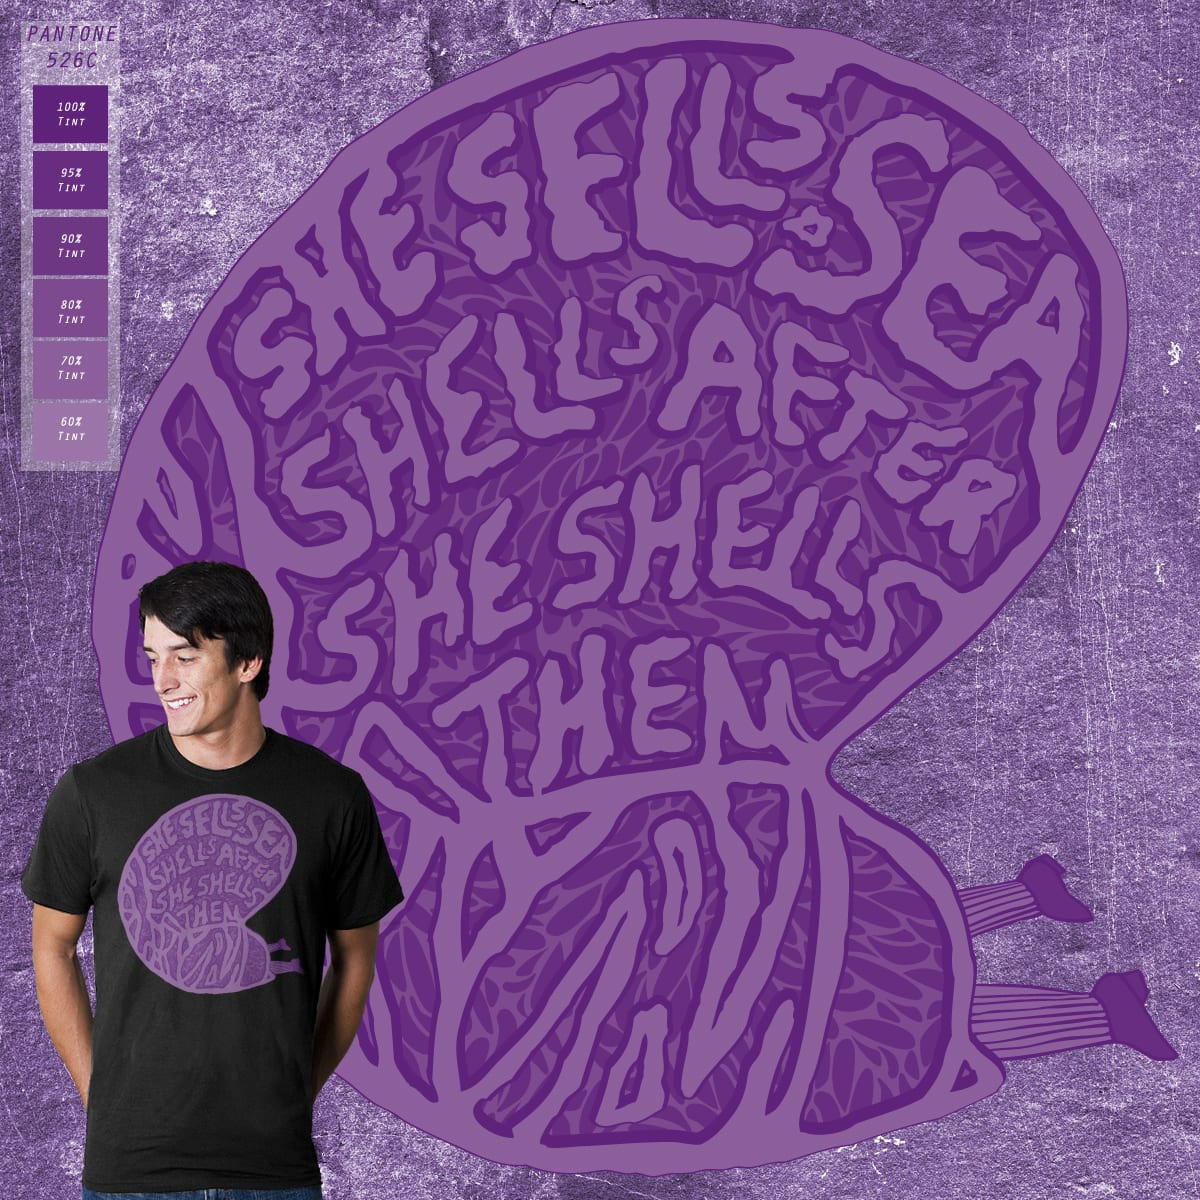 She Sells Sea Shells by Whipbot on Threadless